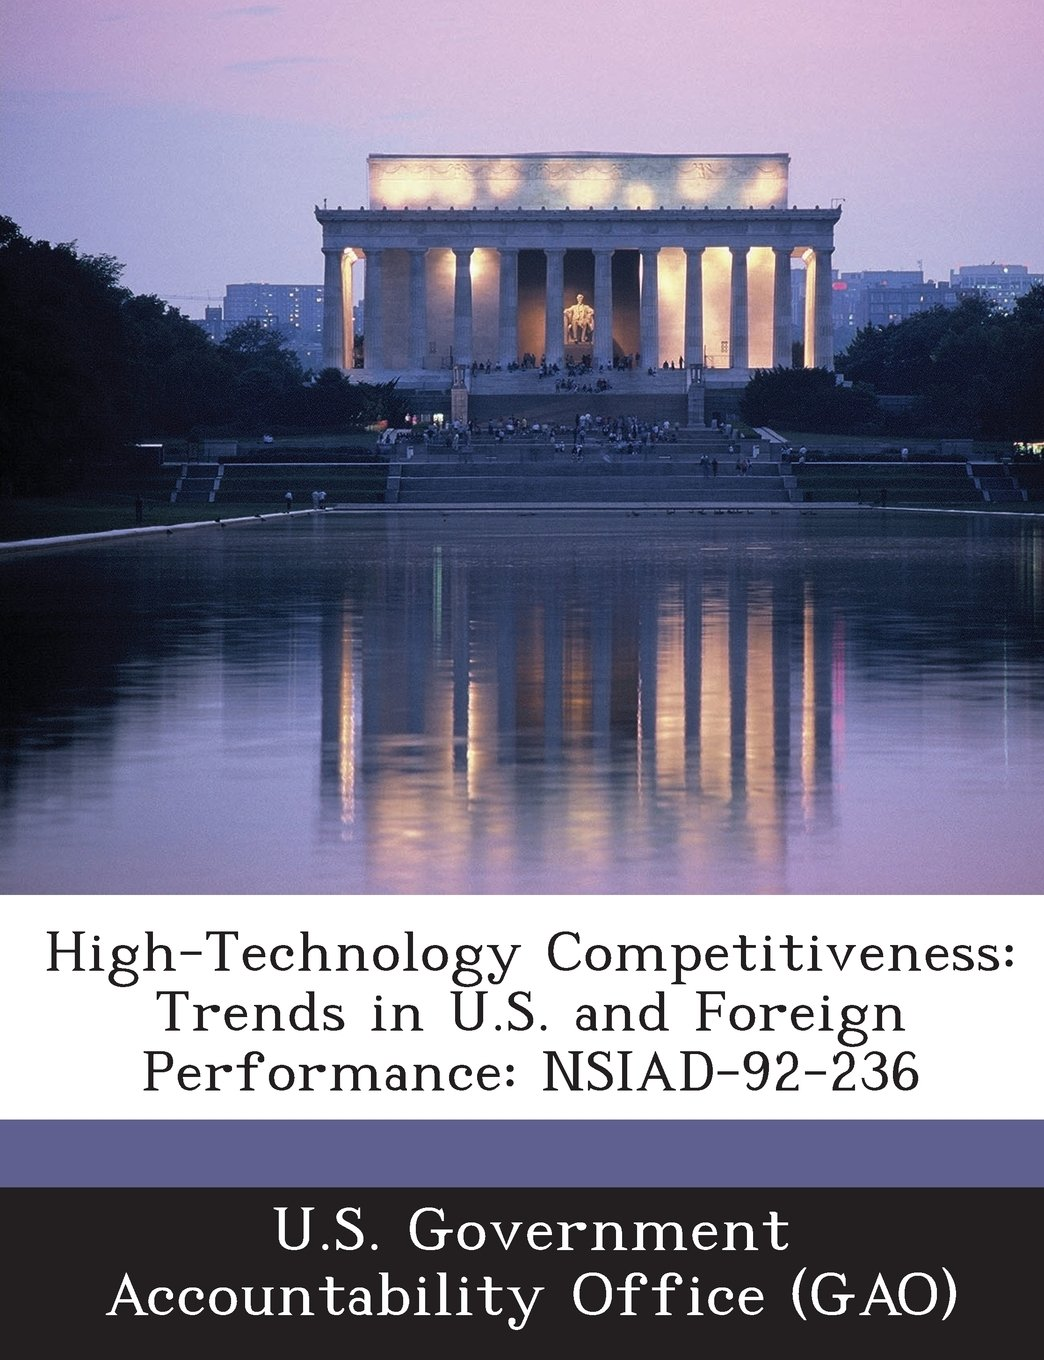 Download High-Technology Competitiveness: Trends in U.S. and Foreign Performance: Nsiad-92-236 ebook